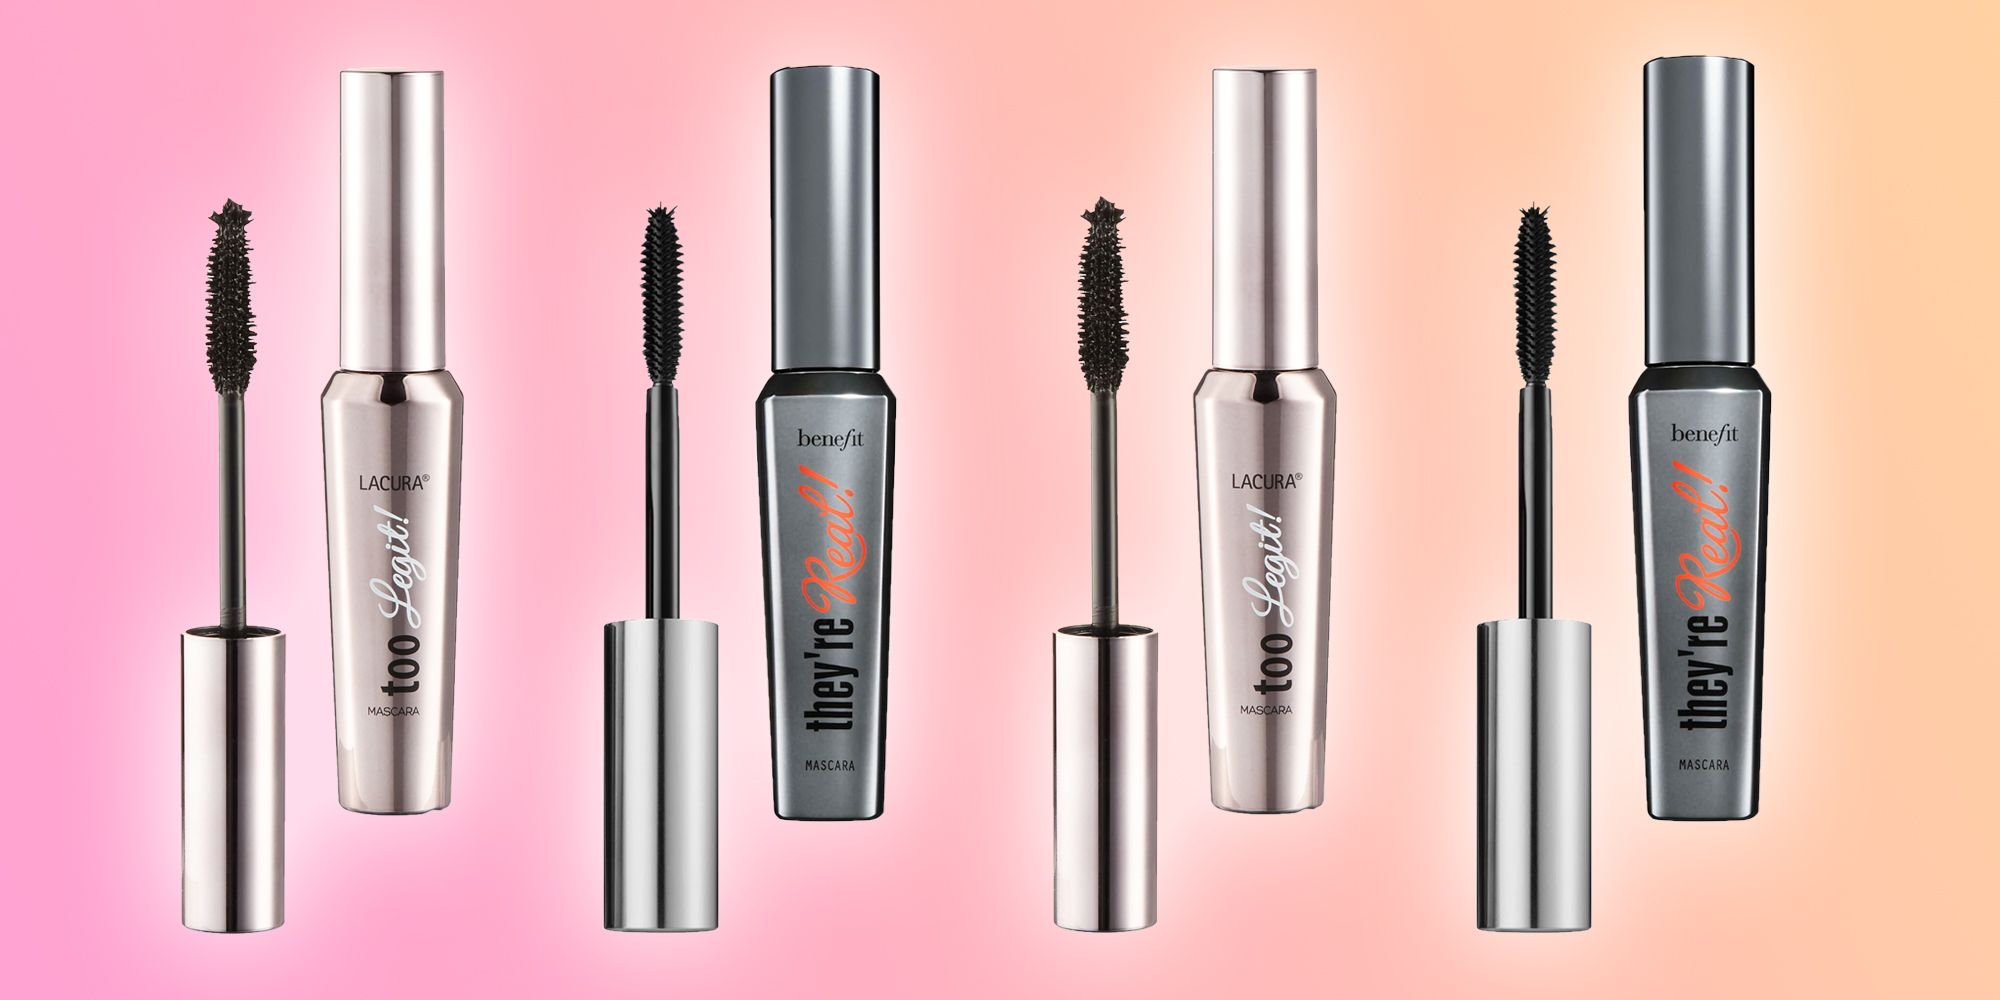 Aldi Shampoo Range Aldi Too Legit Mascara Is A Dupe Of Benefit S They Re Real